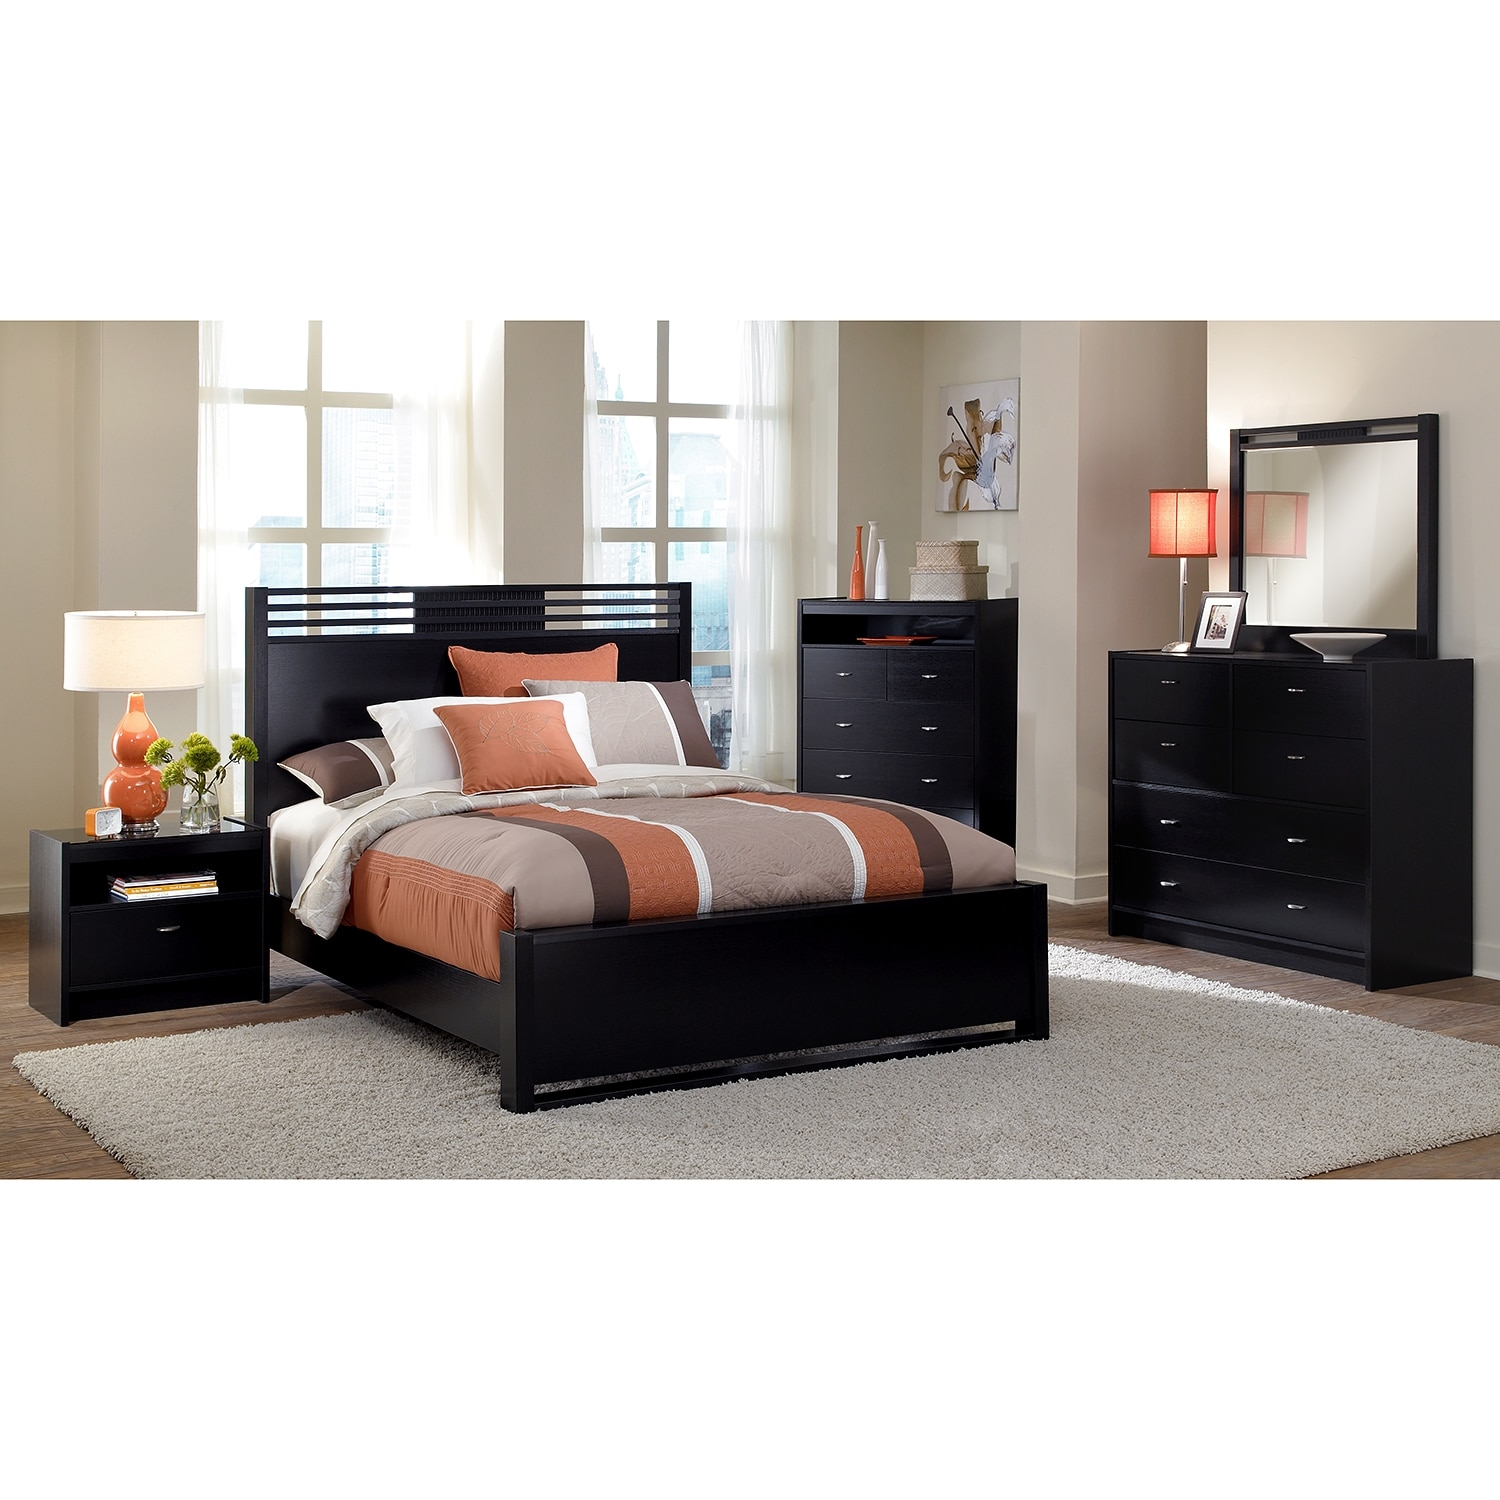 Bally Espresso 7-Piece Queen Bedroom Set With Chest